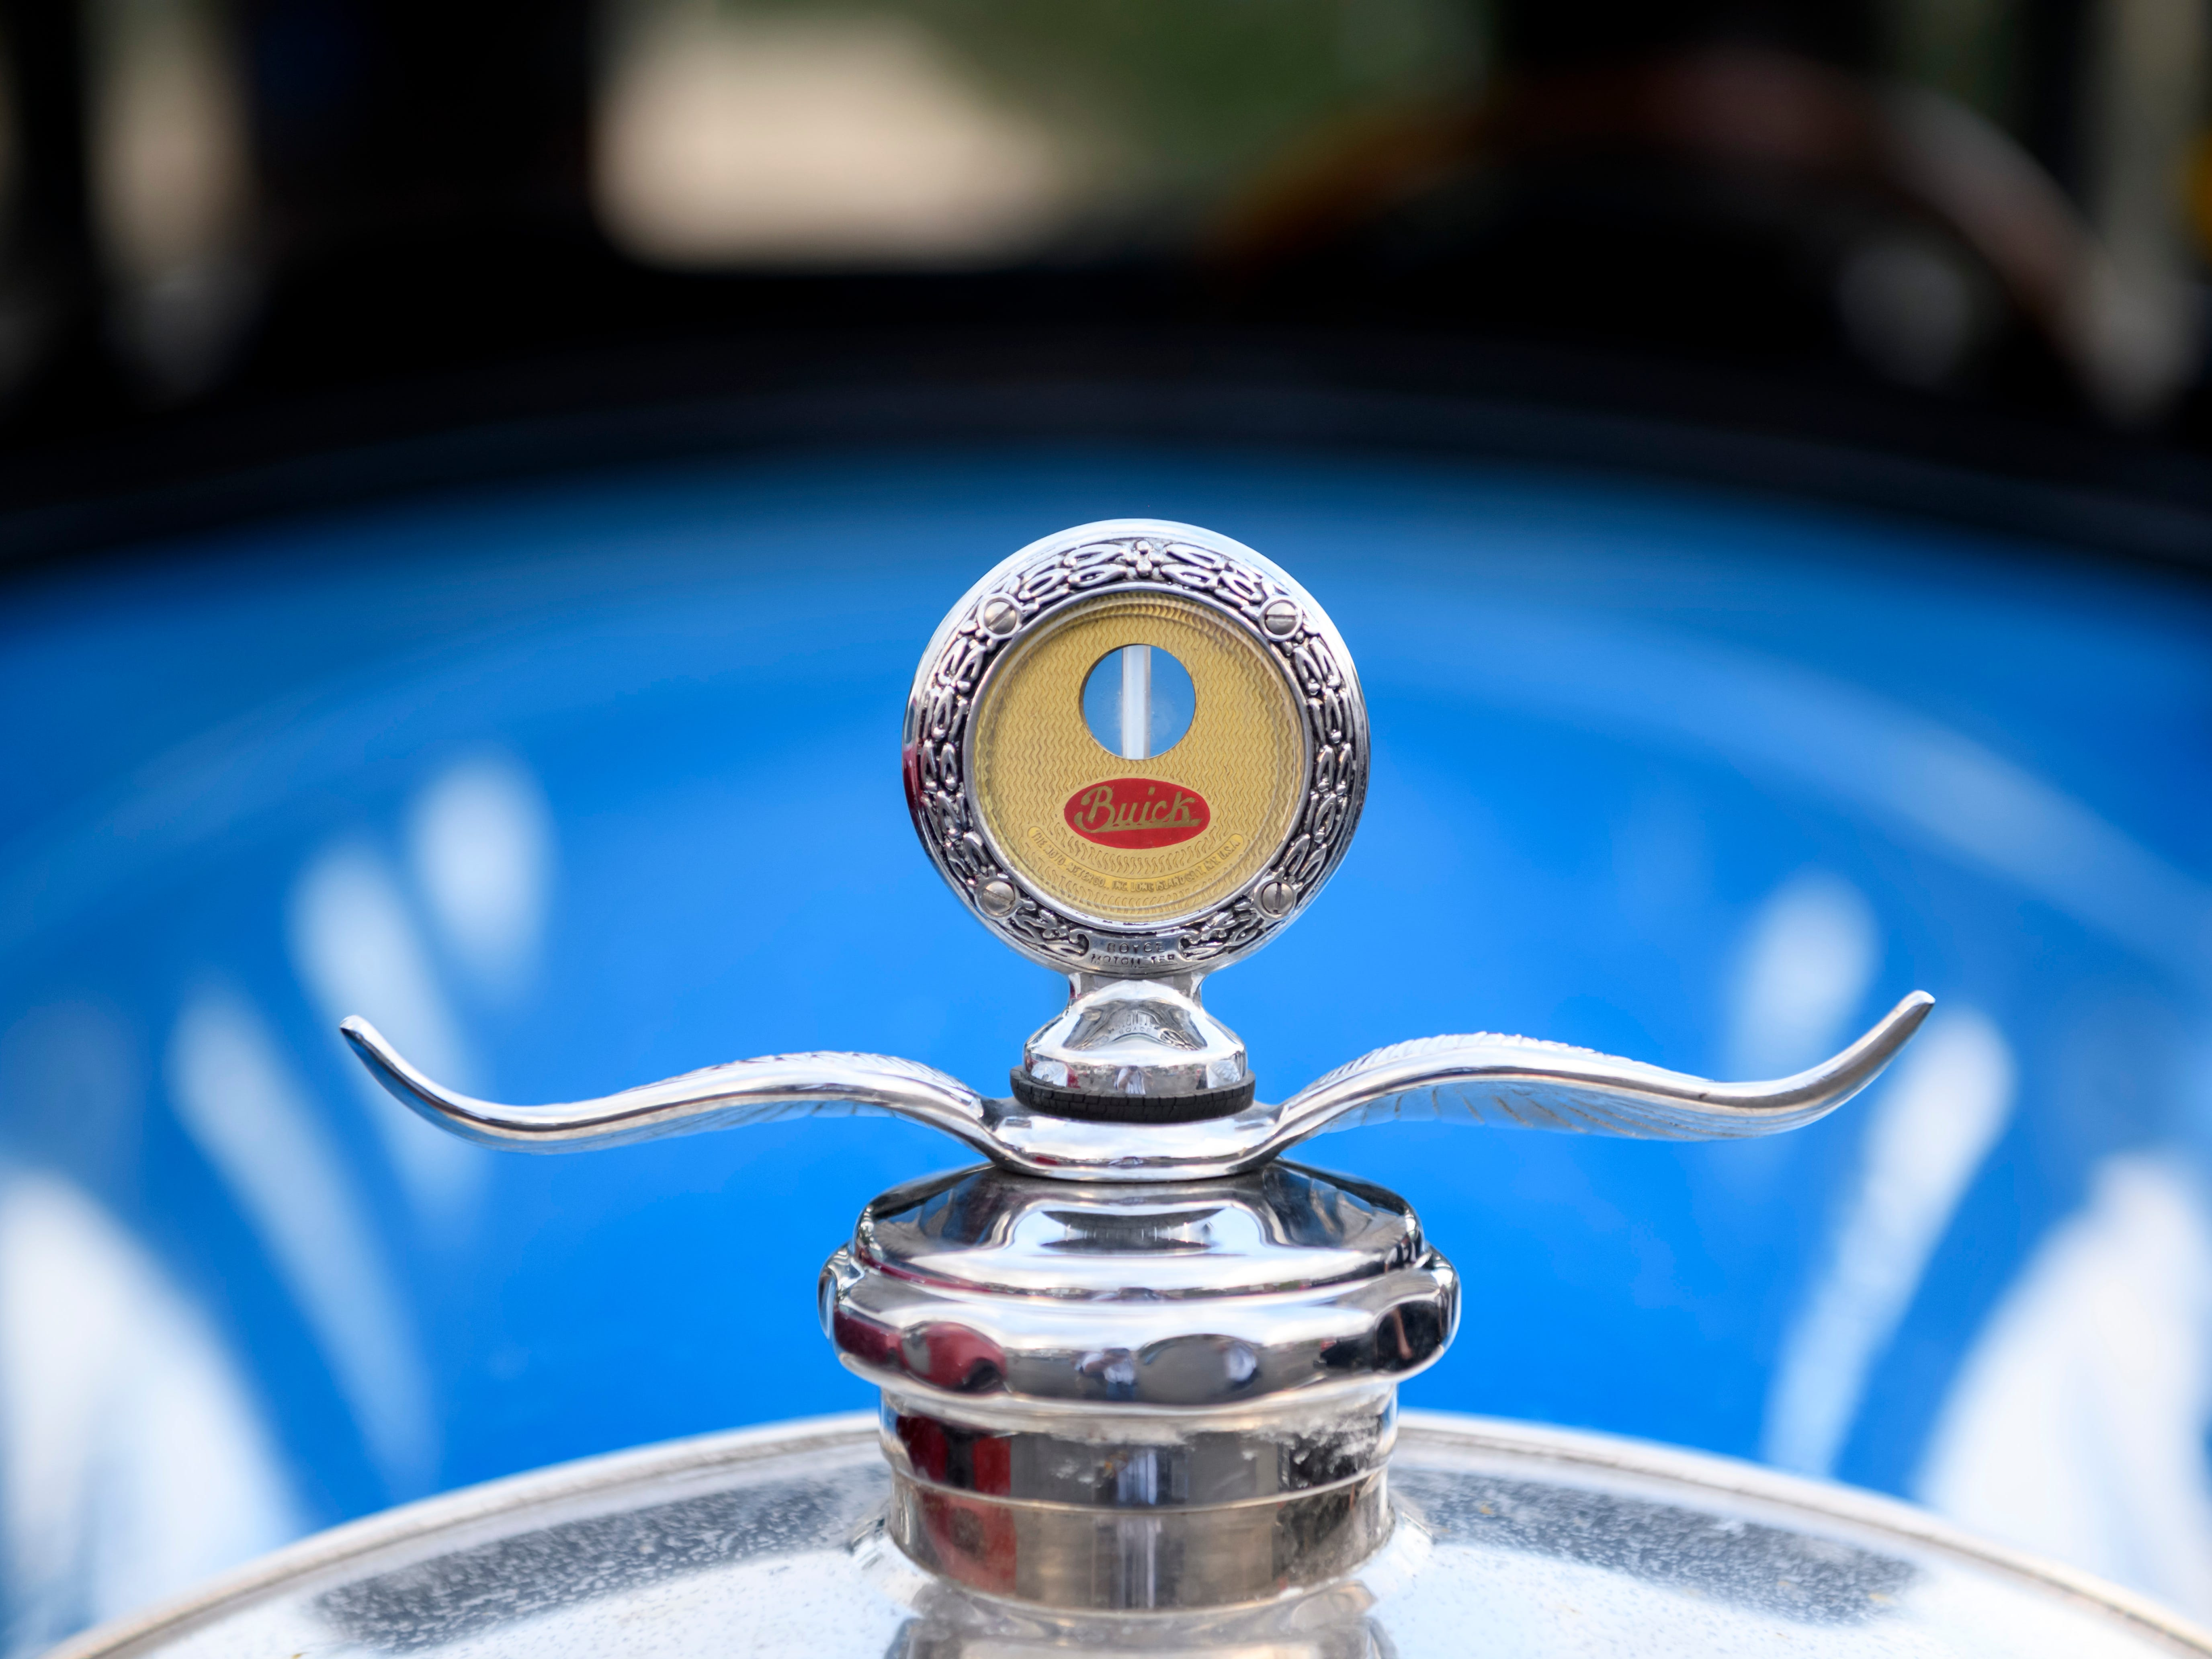 The hood ornament for a 1927 Buick Standard owned by Rusty Berg of Highland in Royal Oak, Aug. 16, 2018.